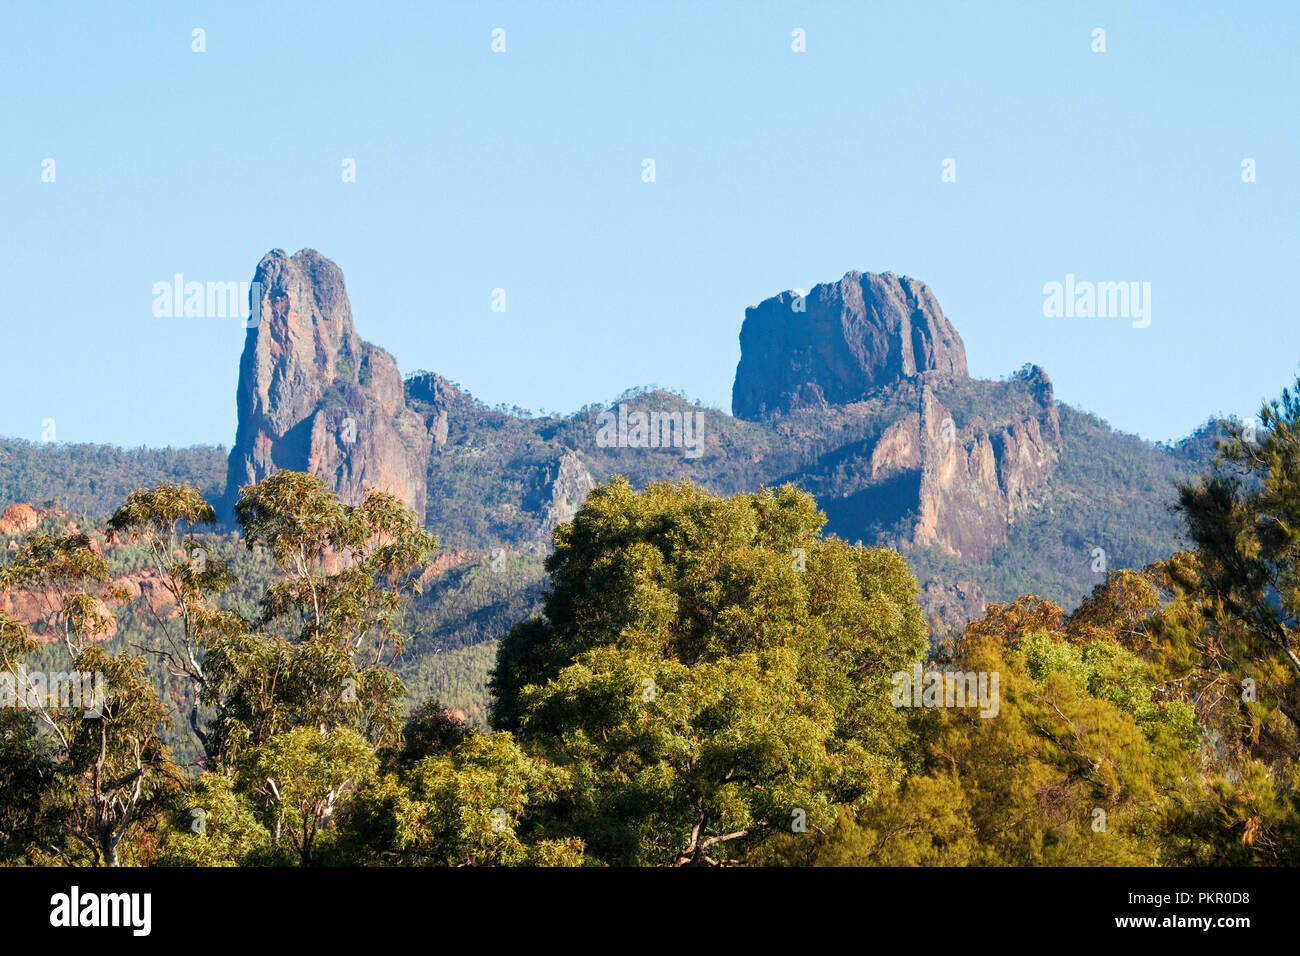 Schroffe Felsen ragen die bewaldeten Bereiche in blauer Himmel im warrumbungle National Park NSW Australien Stockfoto